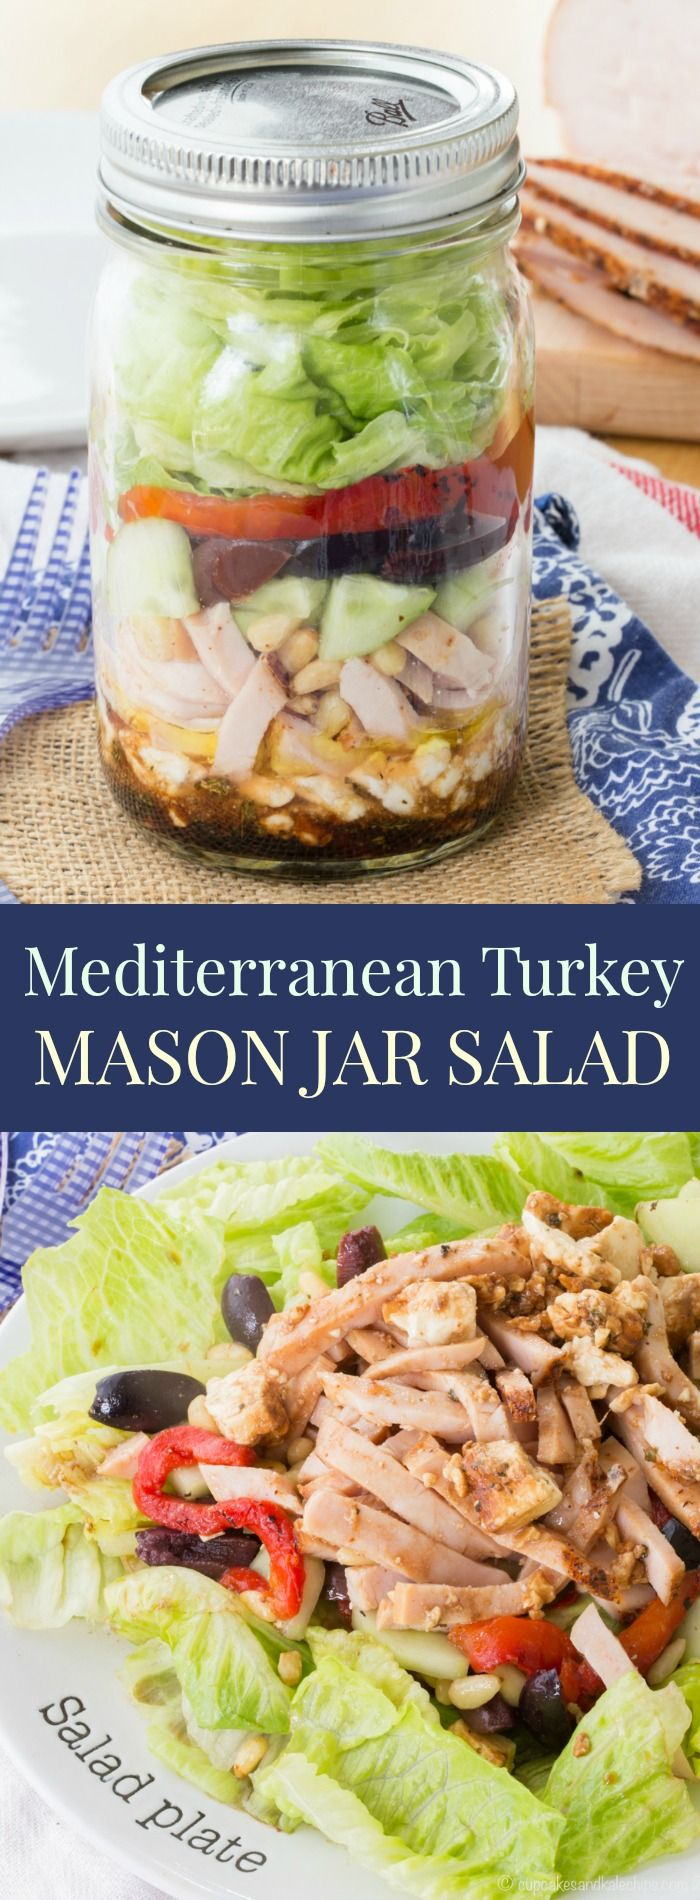 Mediterranean Turkey Mason Jar Salad - layer a simple salad dressing, feta cheese, turkey, veggies, and more for an easy and portable lunch recipe with @jennieorecipes. Gluten free and low carb. #ad | cupcakesandkalechips.com